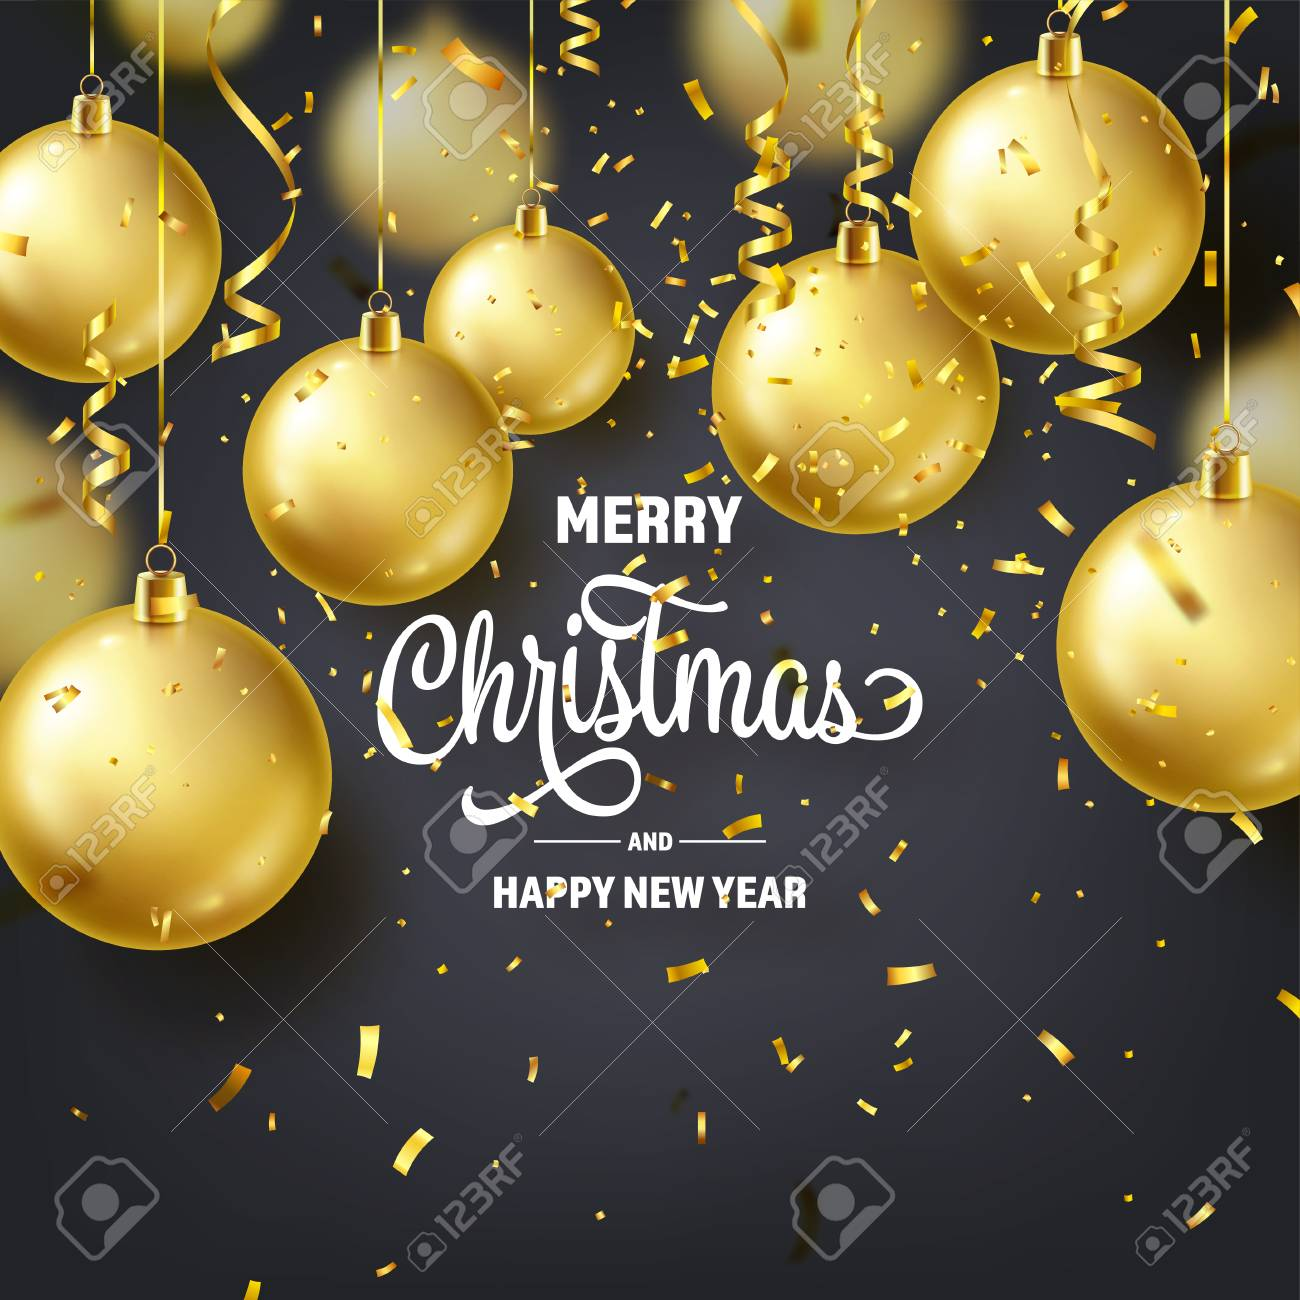 Christmas Background With Tree Balls, Ribbon And Confetti. Golden Ball. New Year. Winter holidays. Season Sale Decoration. Gold Xmas Gift - 115591206